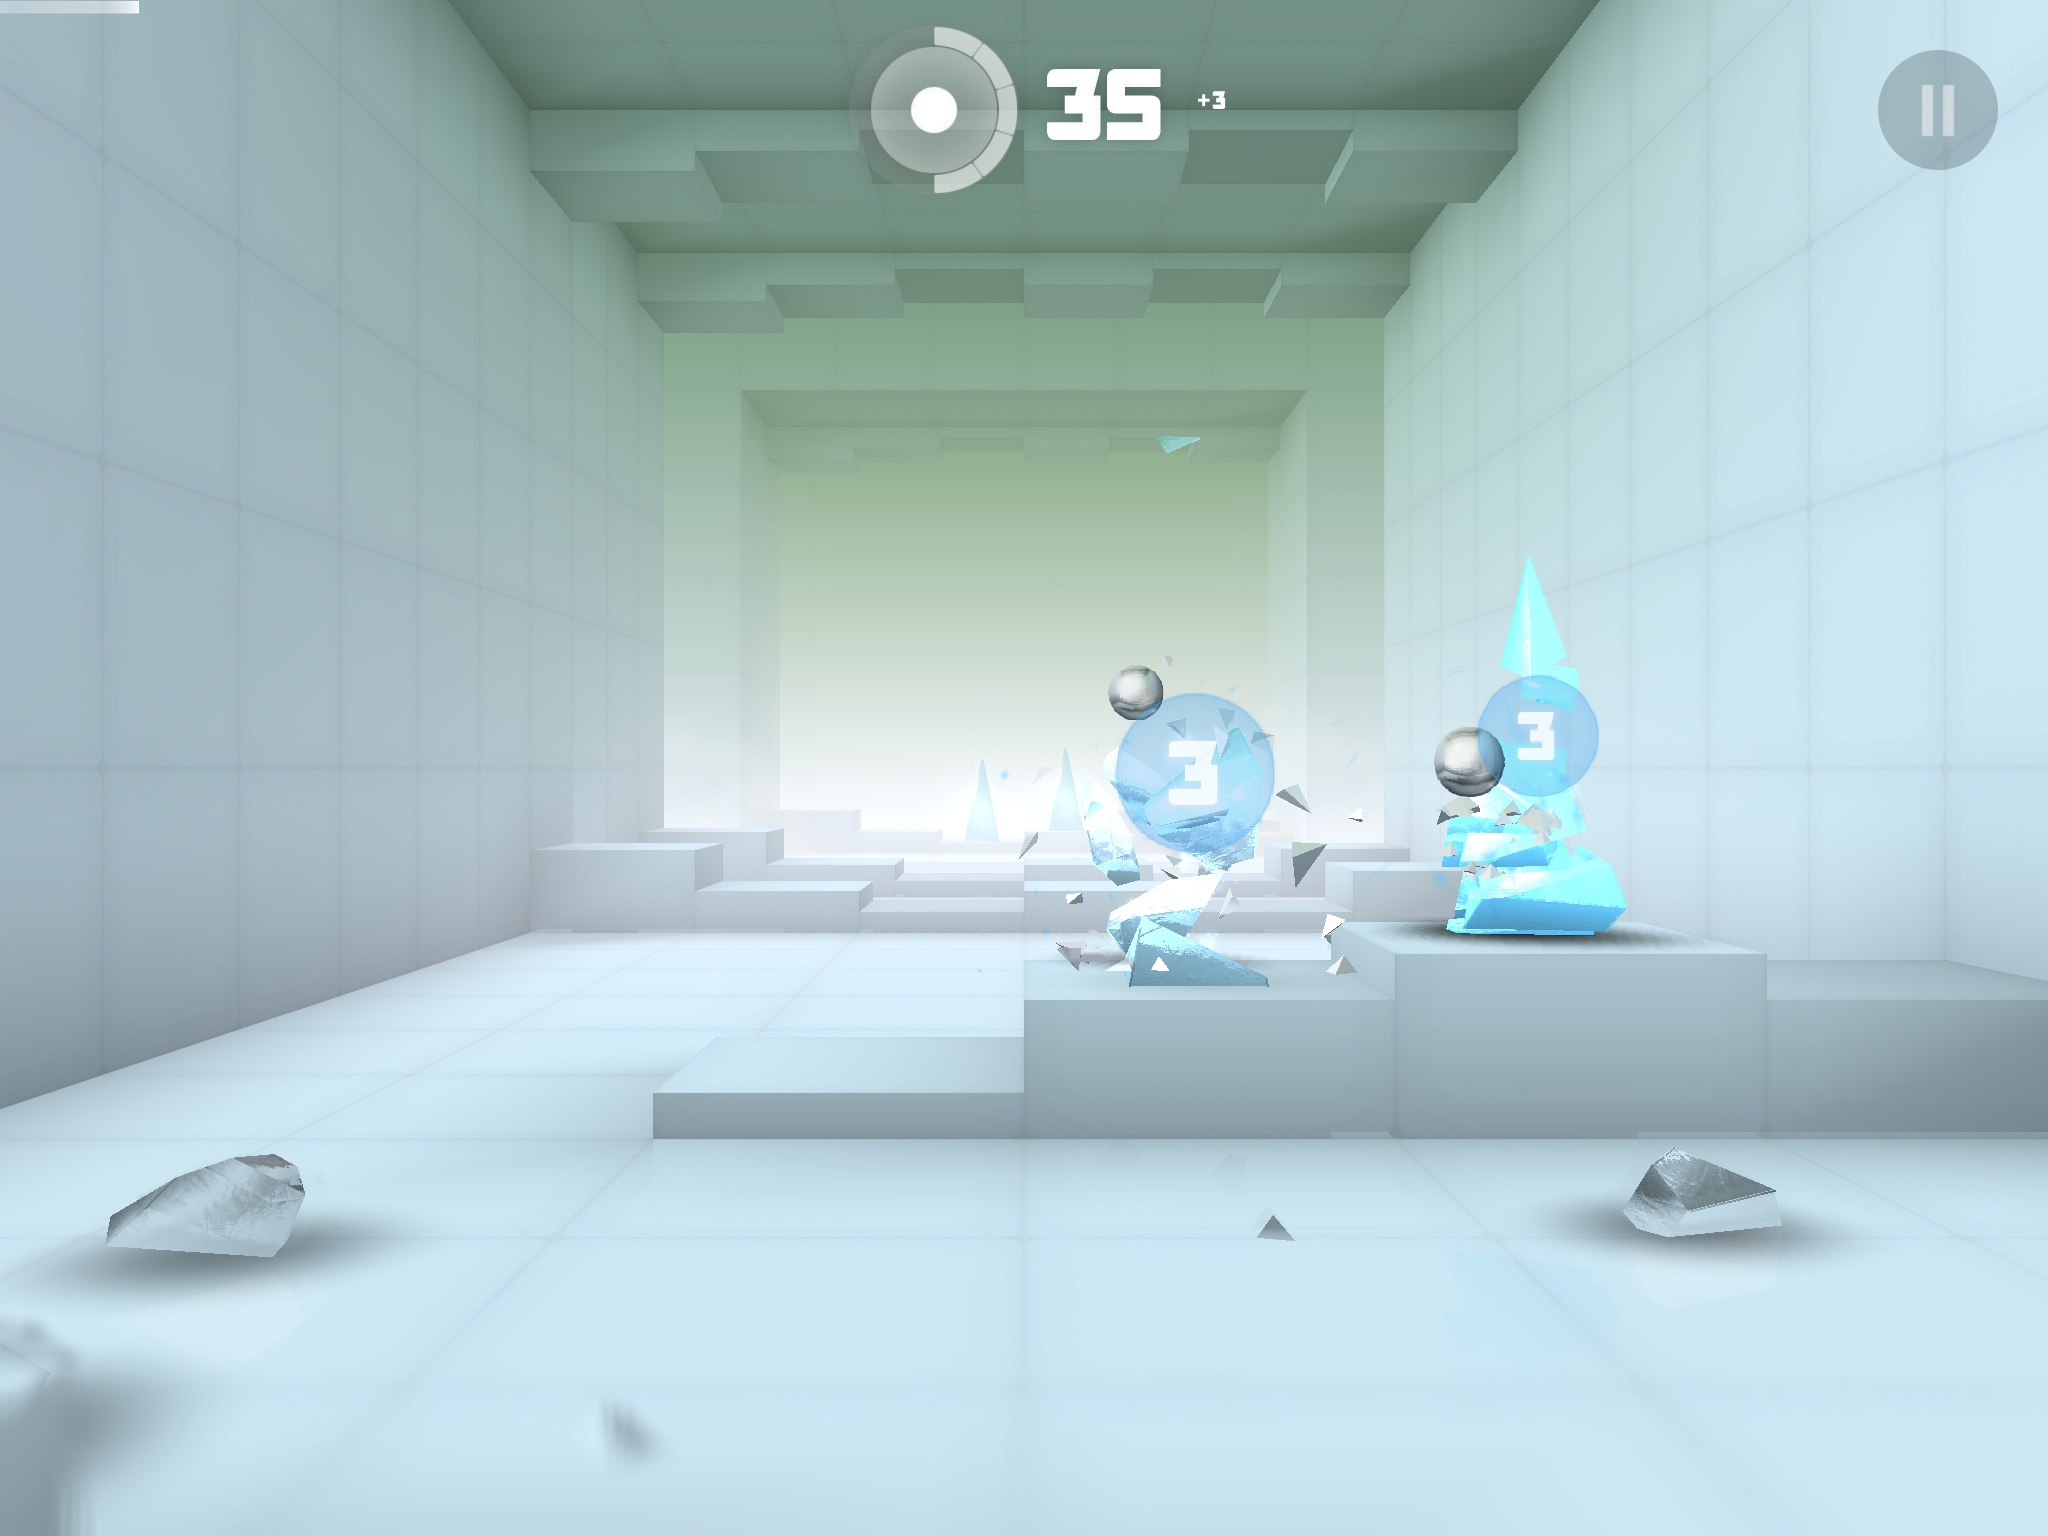 smashhit2-androappinfo